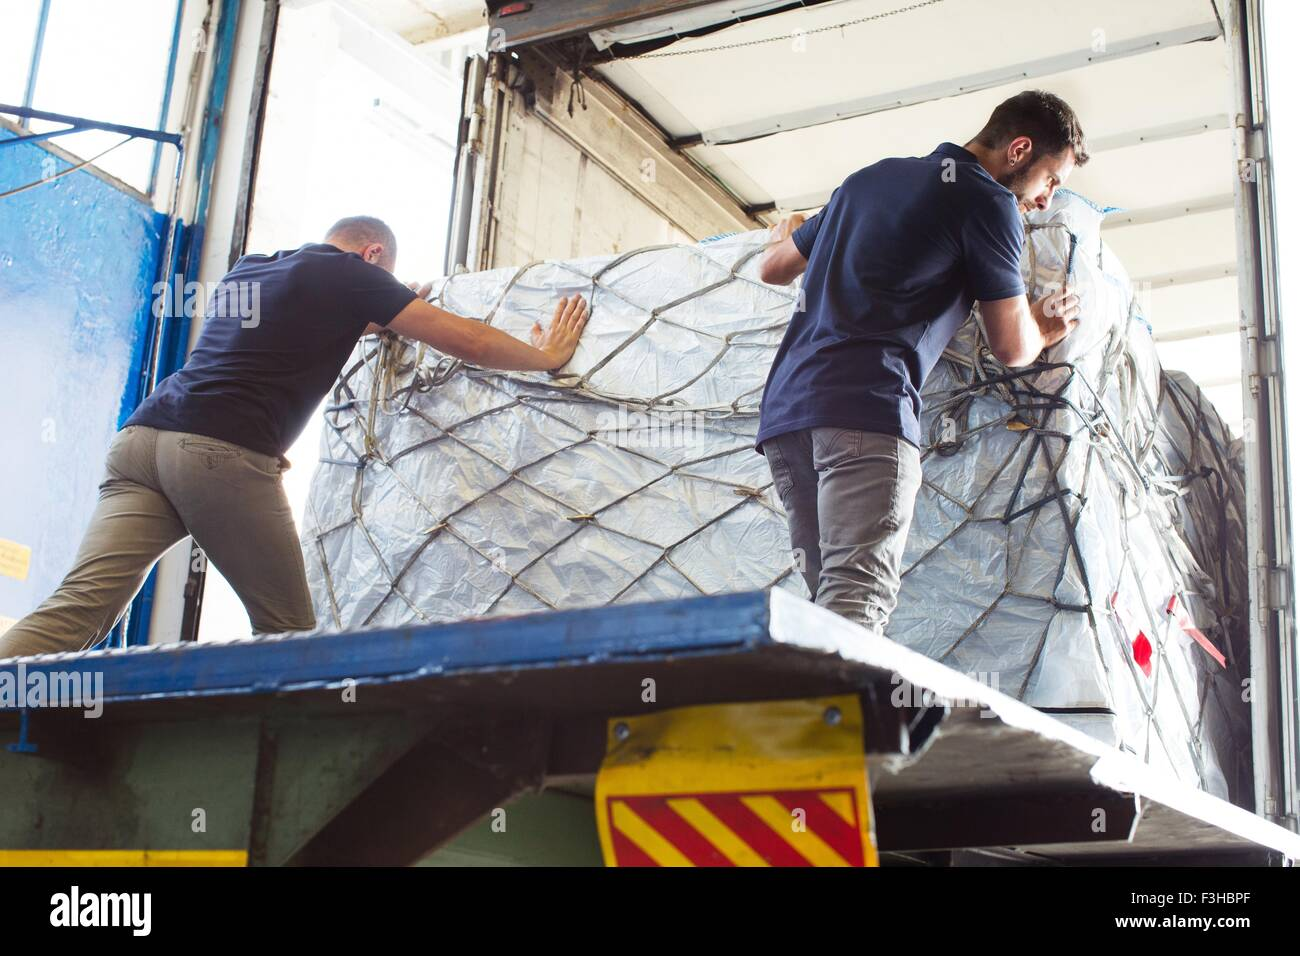 Workers pushing freight into air freight container - Stock Image